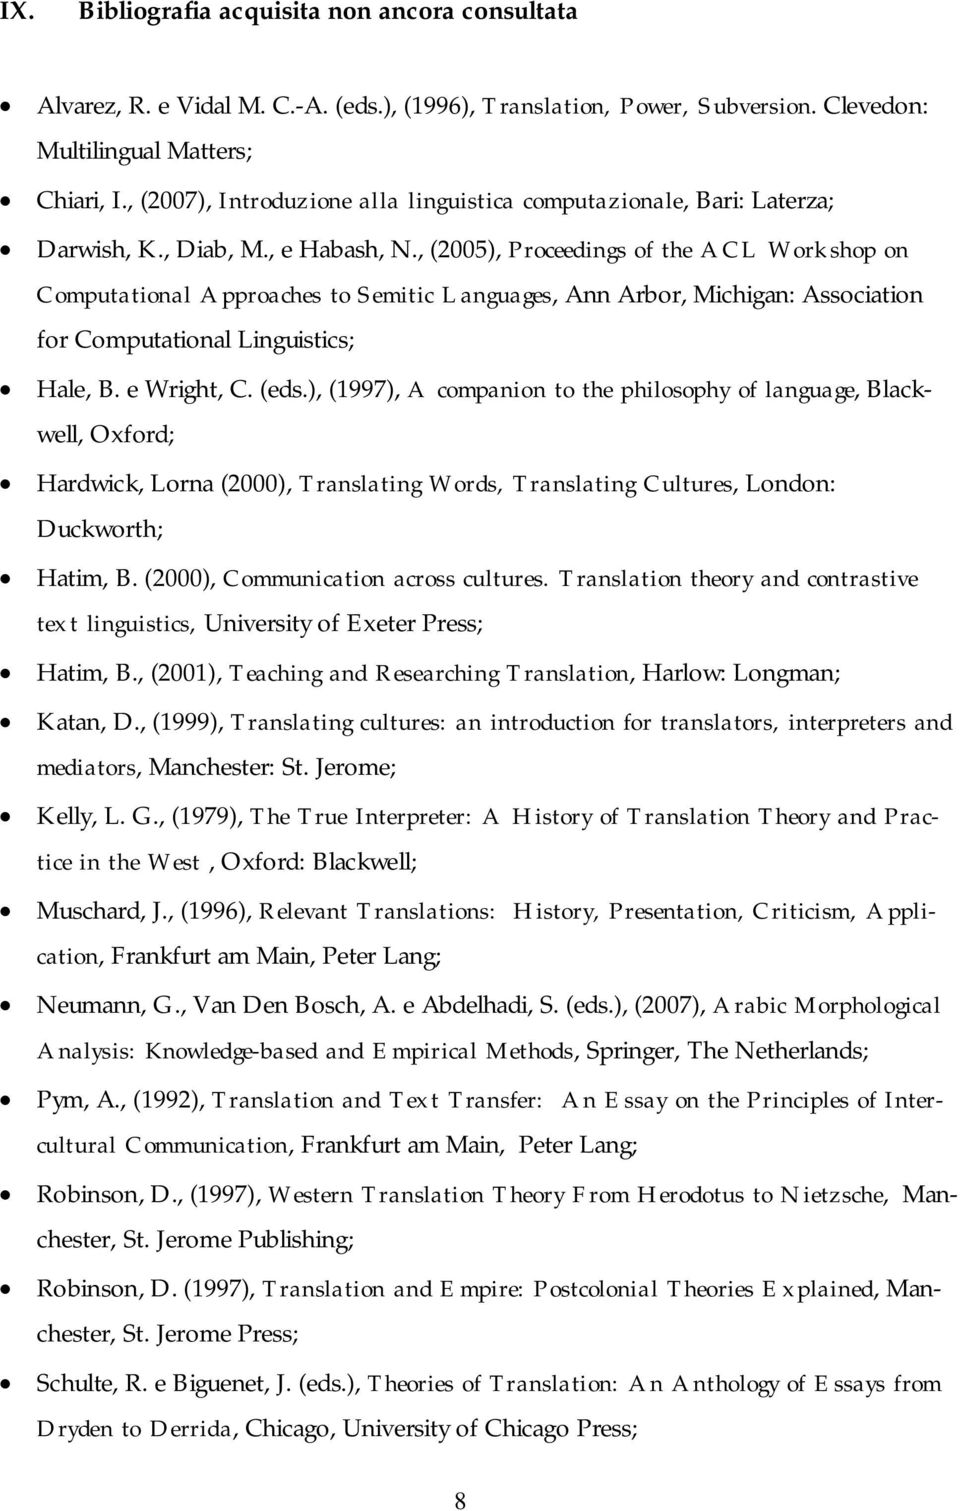 , (2005), Proceedings of the ACL Workshop on Computational Approaches to Semitic Languages, Ann Arbor, Michigan: Association for Computational Linguistics; Hale, B. e Wright, C. (eds.